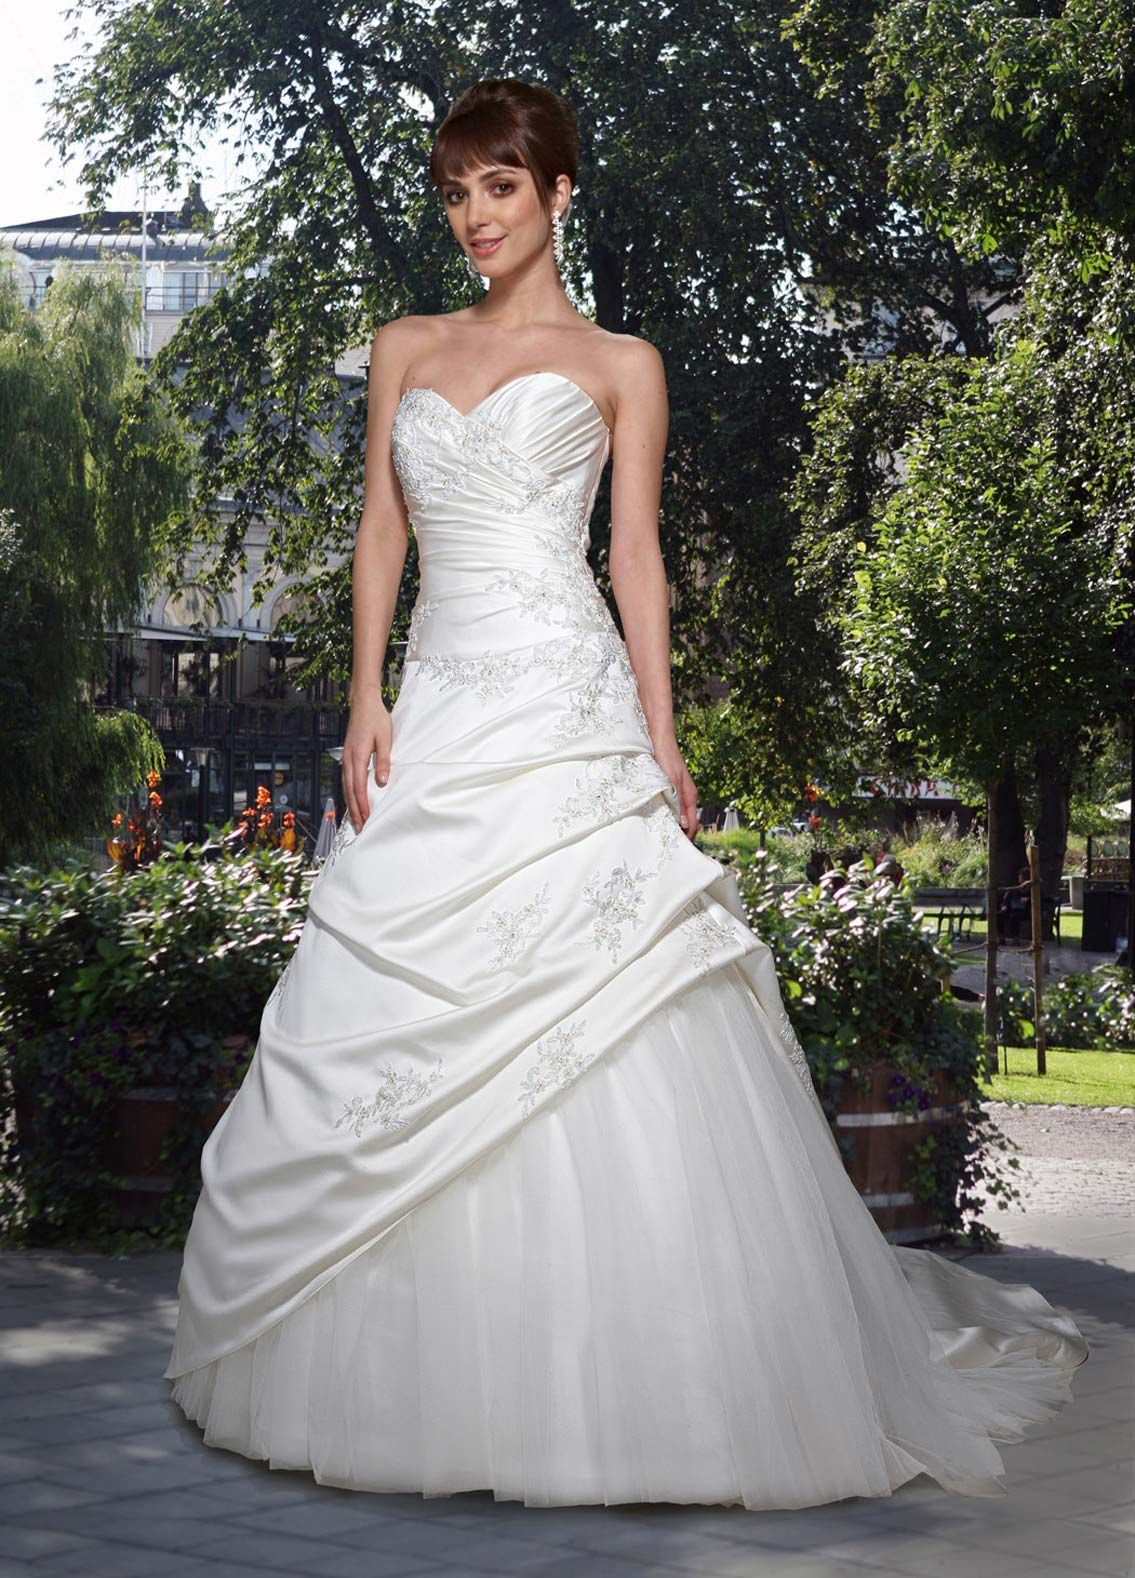 Pleated wedding dress  Da Vinci Bridal Style   kelseyus wedding  Pinterest  Wedding